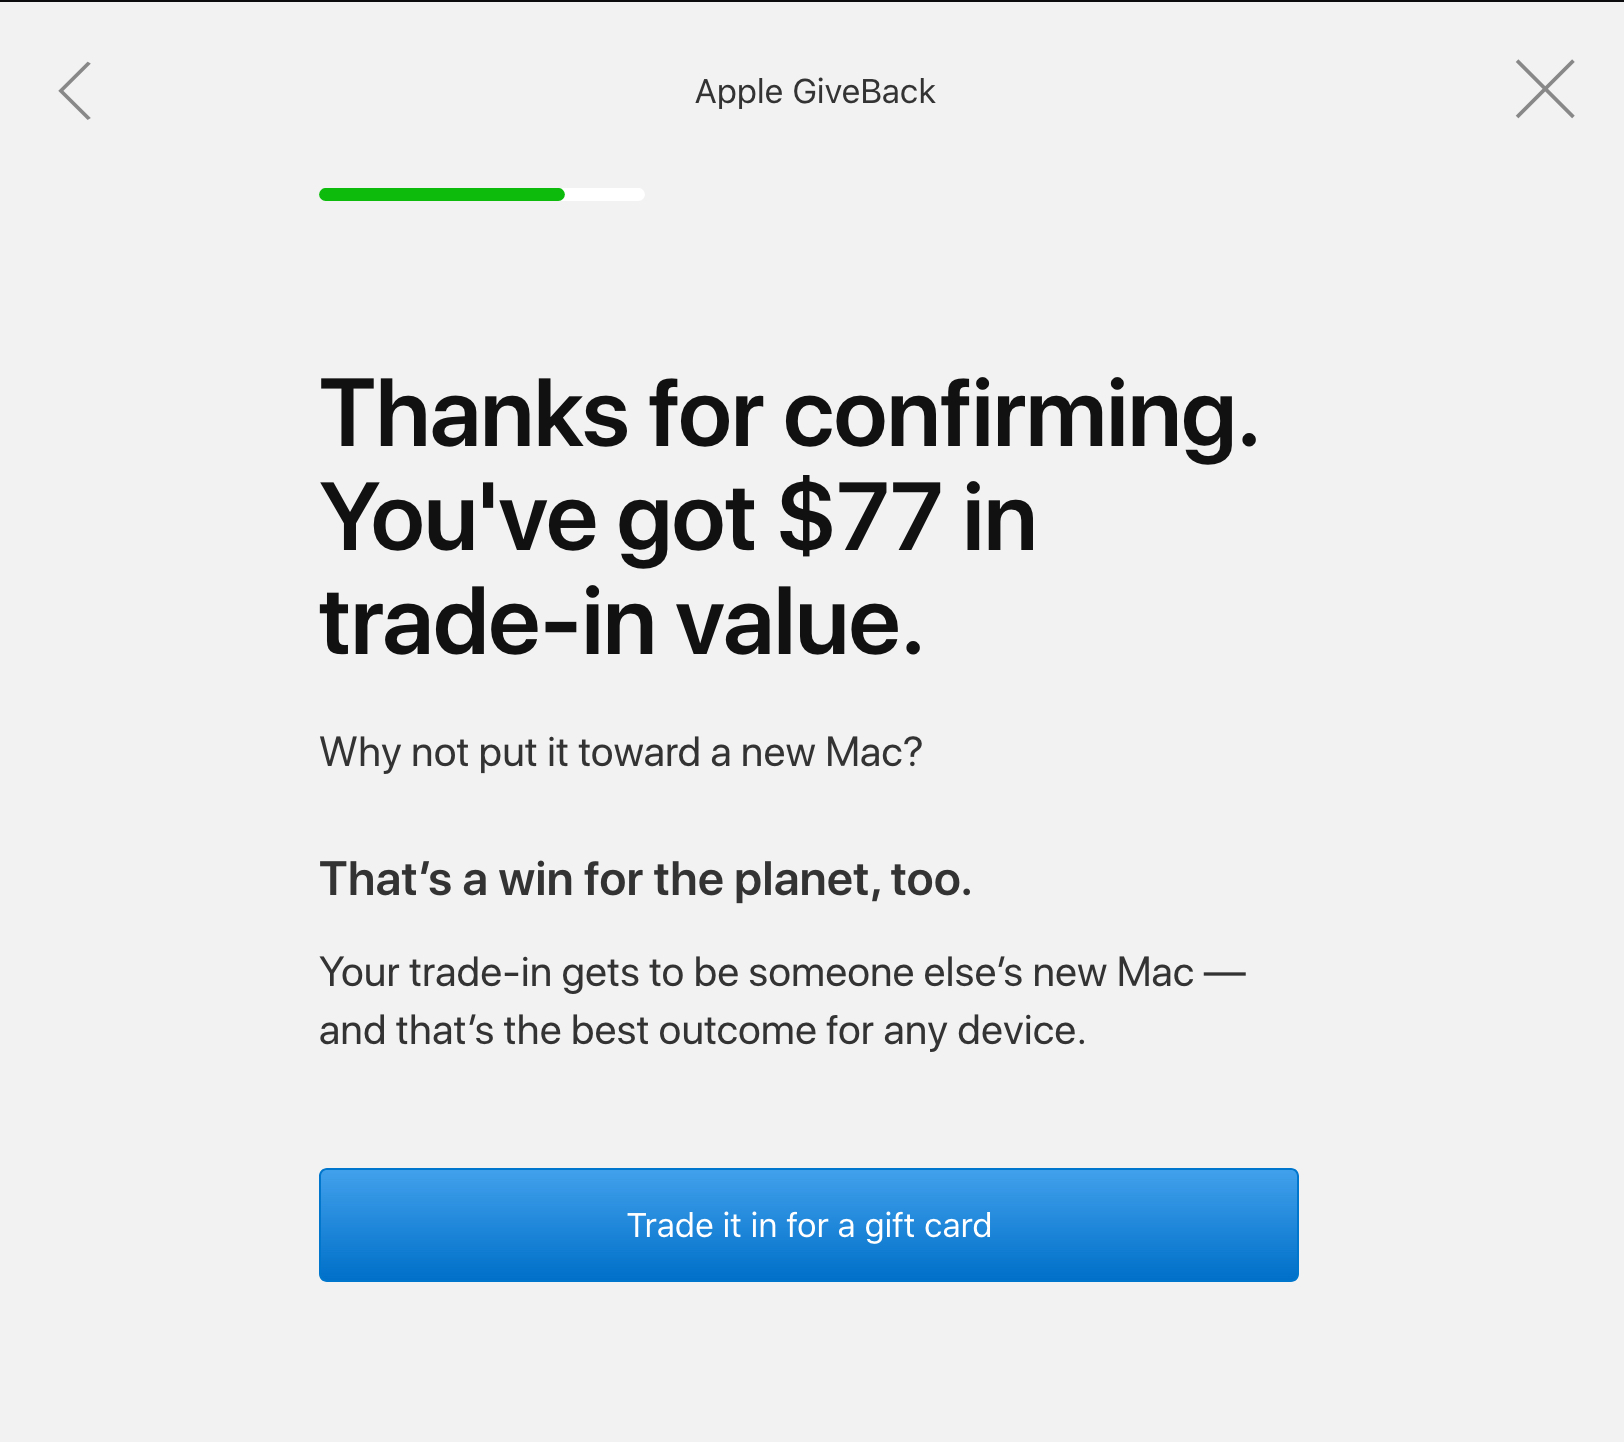 Apple GiveBack Trade-In Value